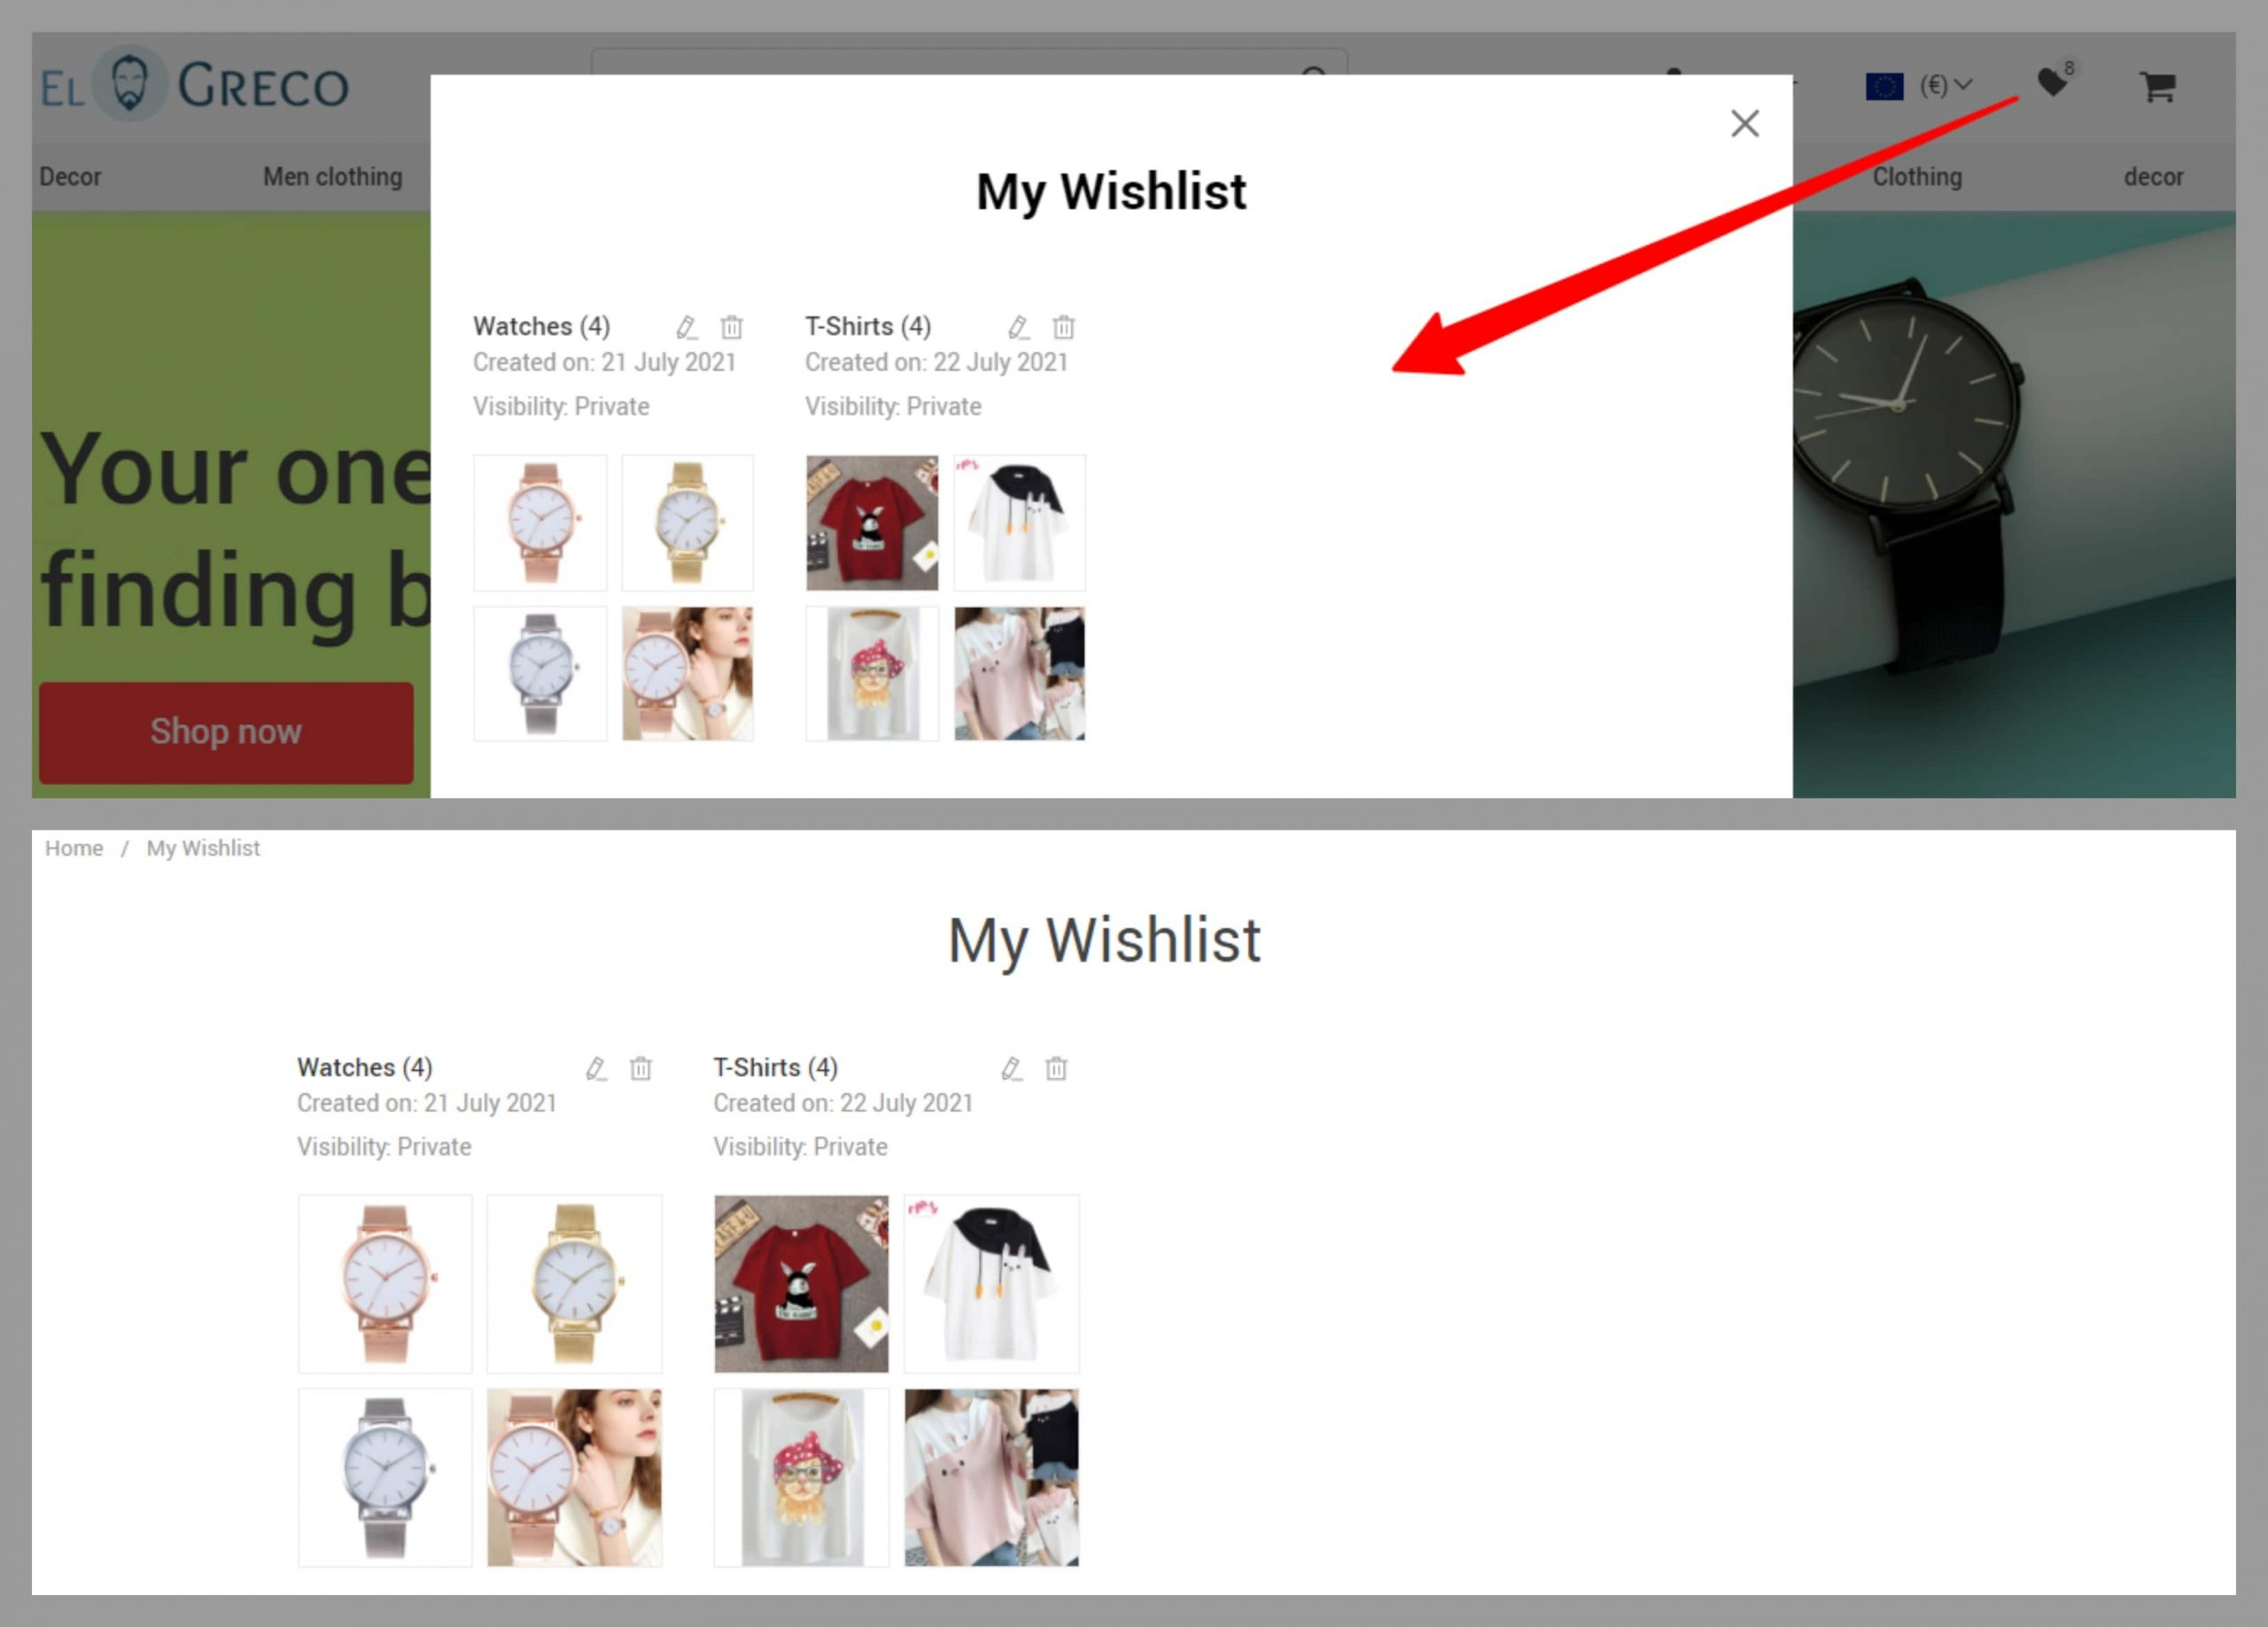 Wish lists displayed as a pop-up window and as a separate page on an online store.